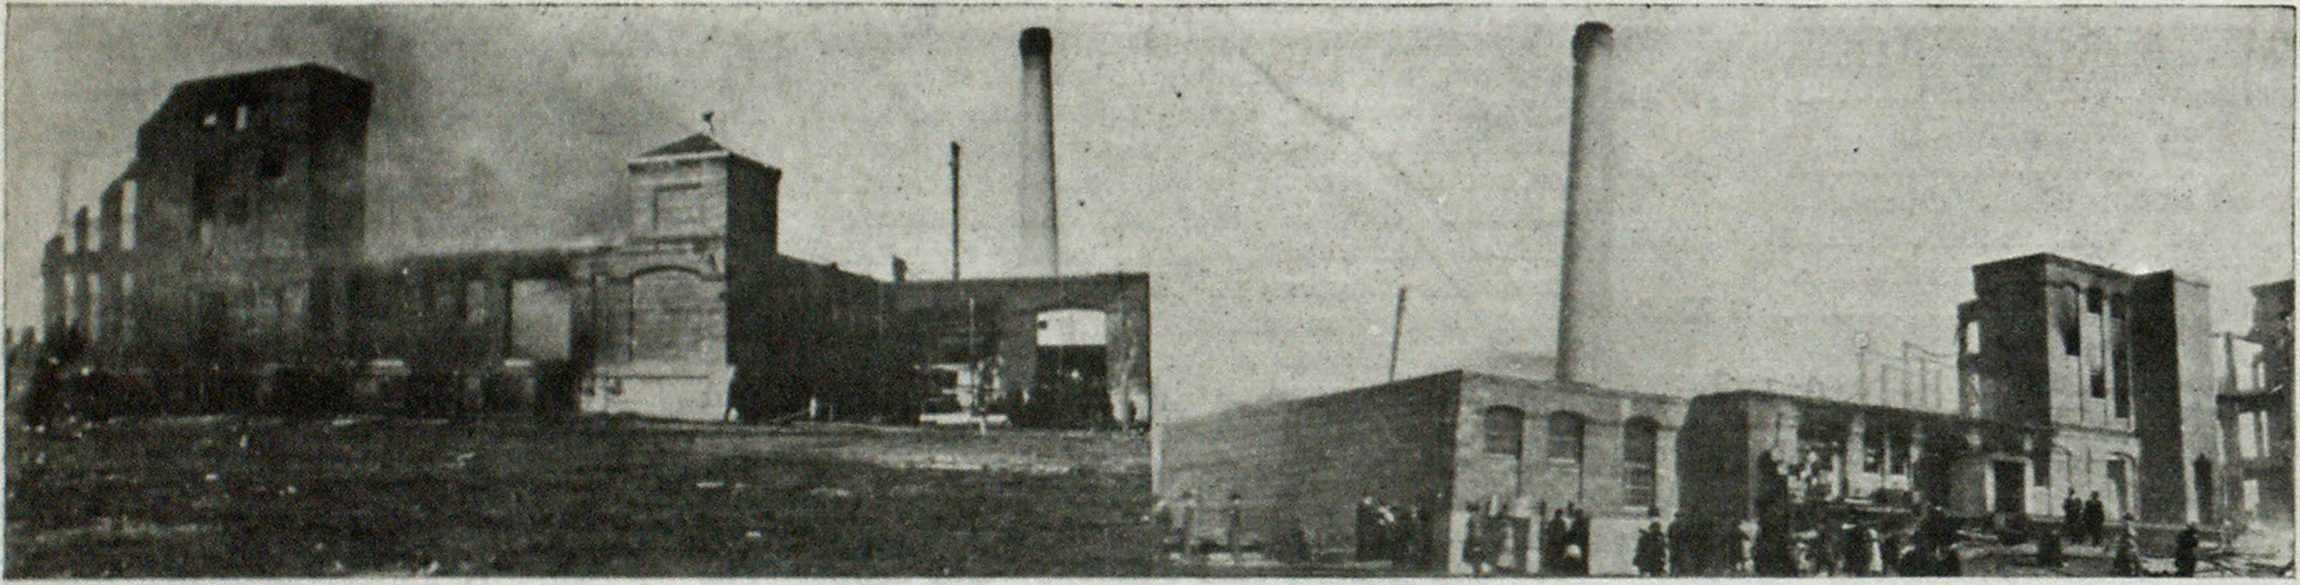 Ruins of the Vermont Chocolate Company's Plant after the Fire at Burlington.